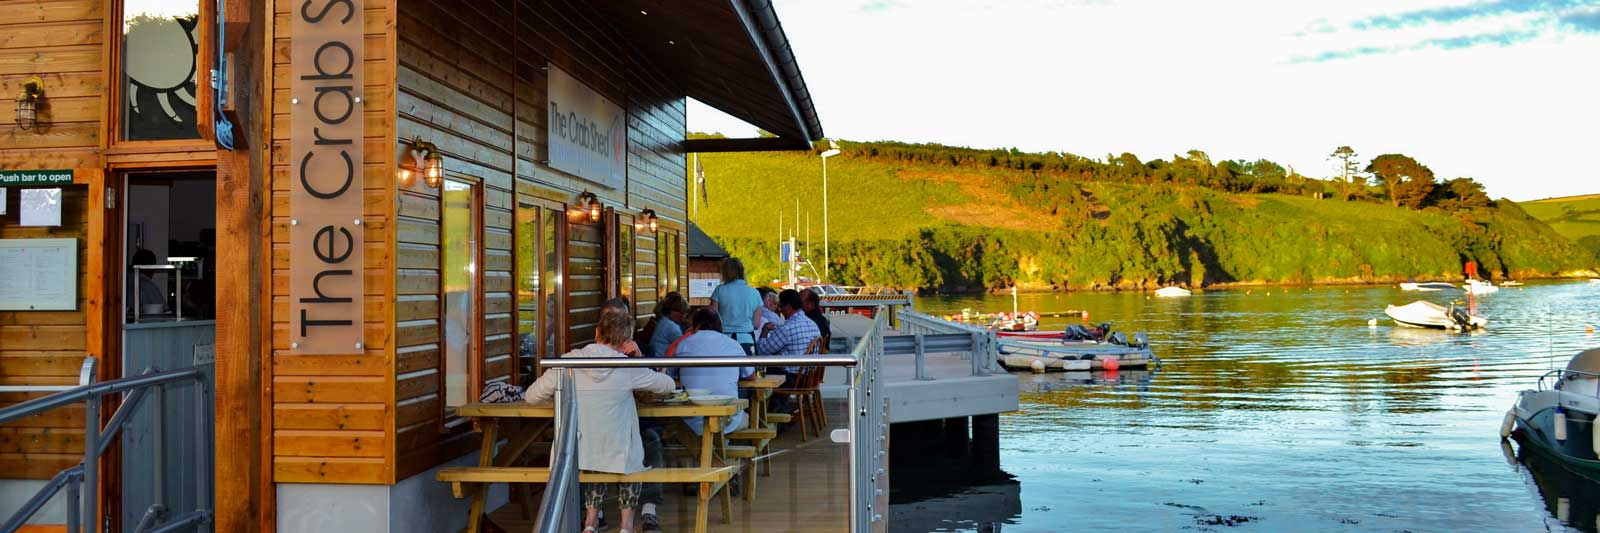 The Crab Shed Salcombe restaurant - waterside seafood dining overlooking the harbour